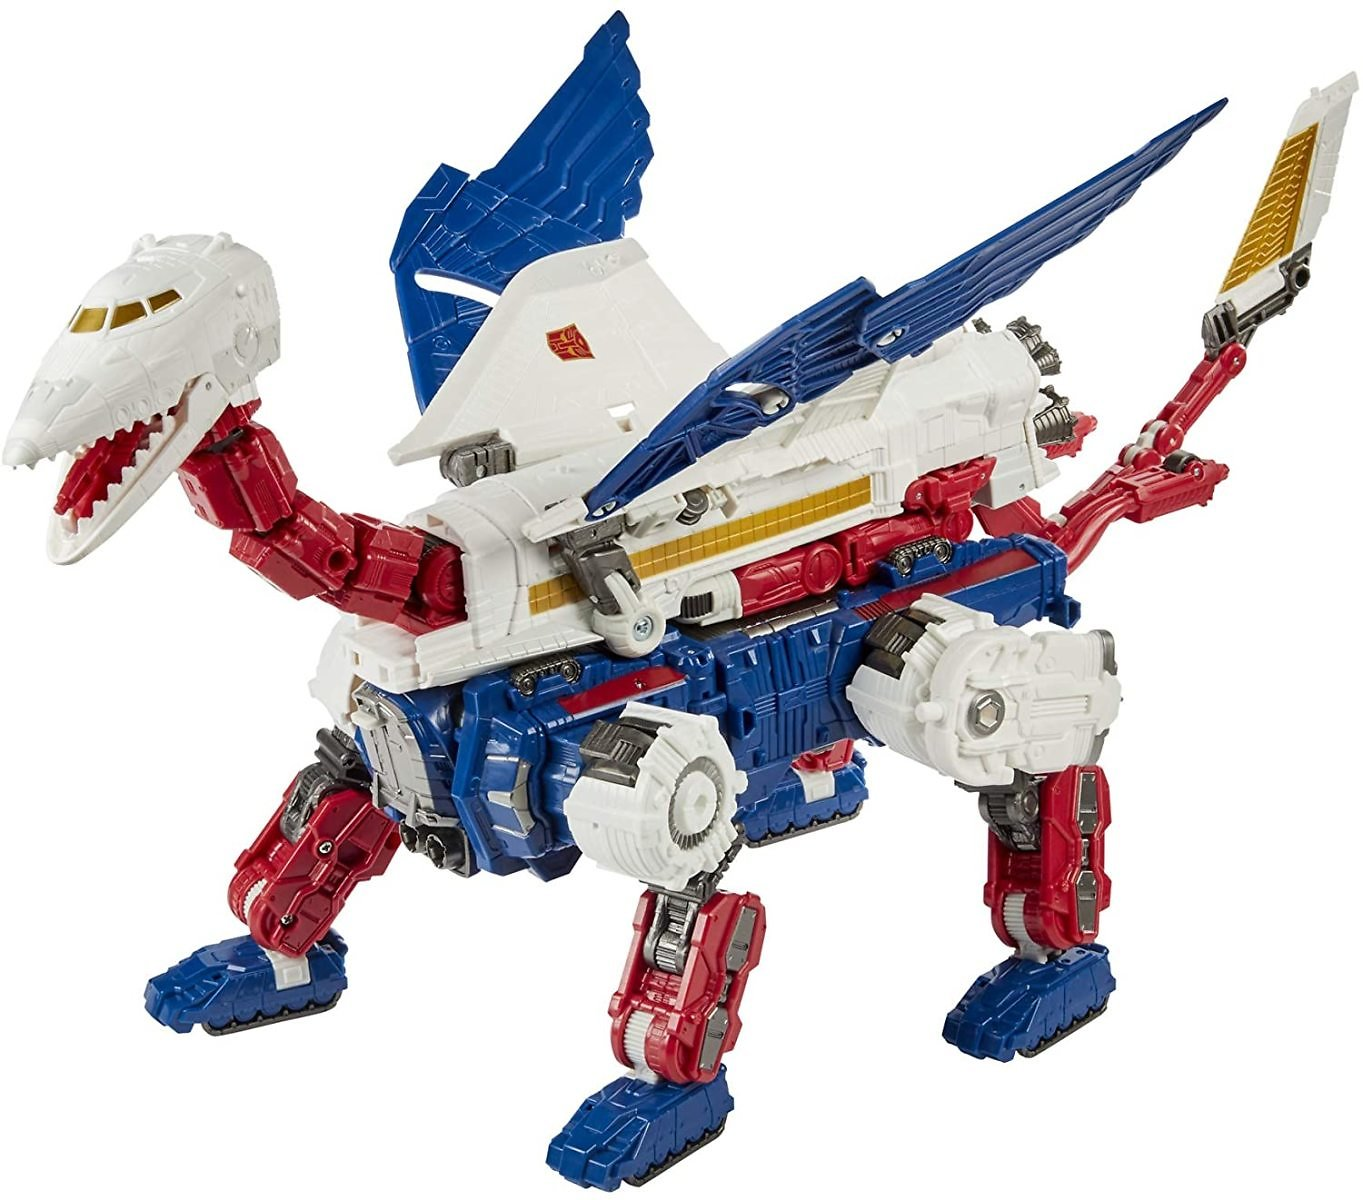 Transformers Toys Generations War for Cybertron: Earthrise Leader WFC-E24 Sky Lynx